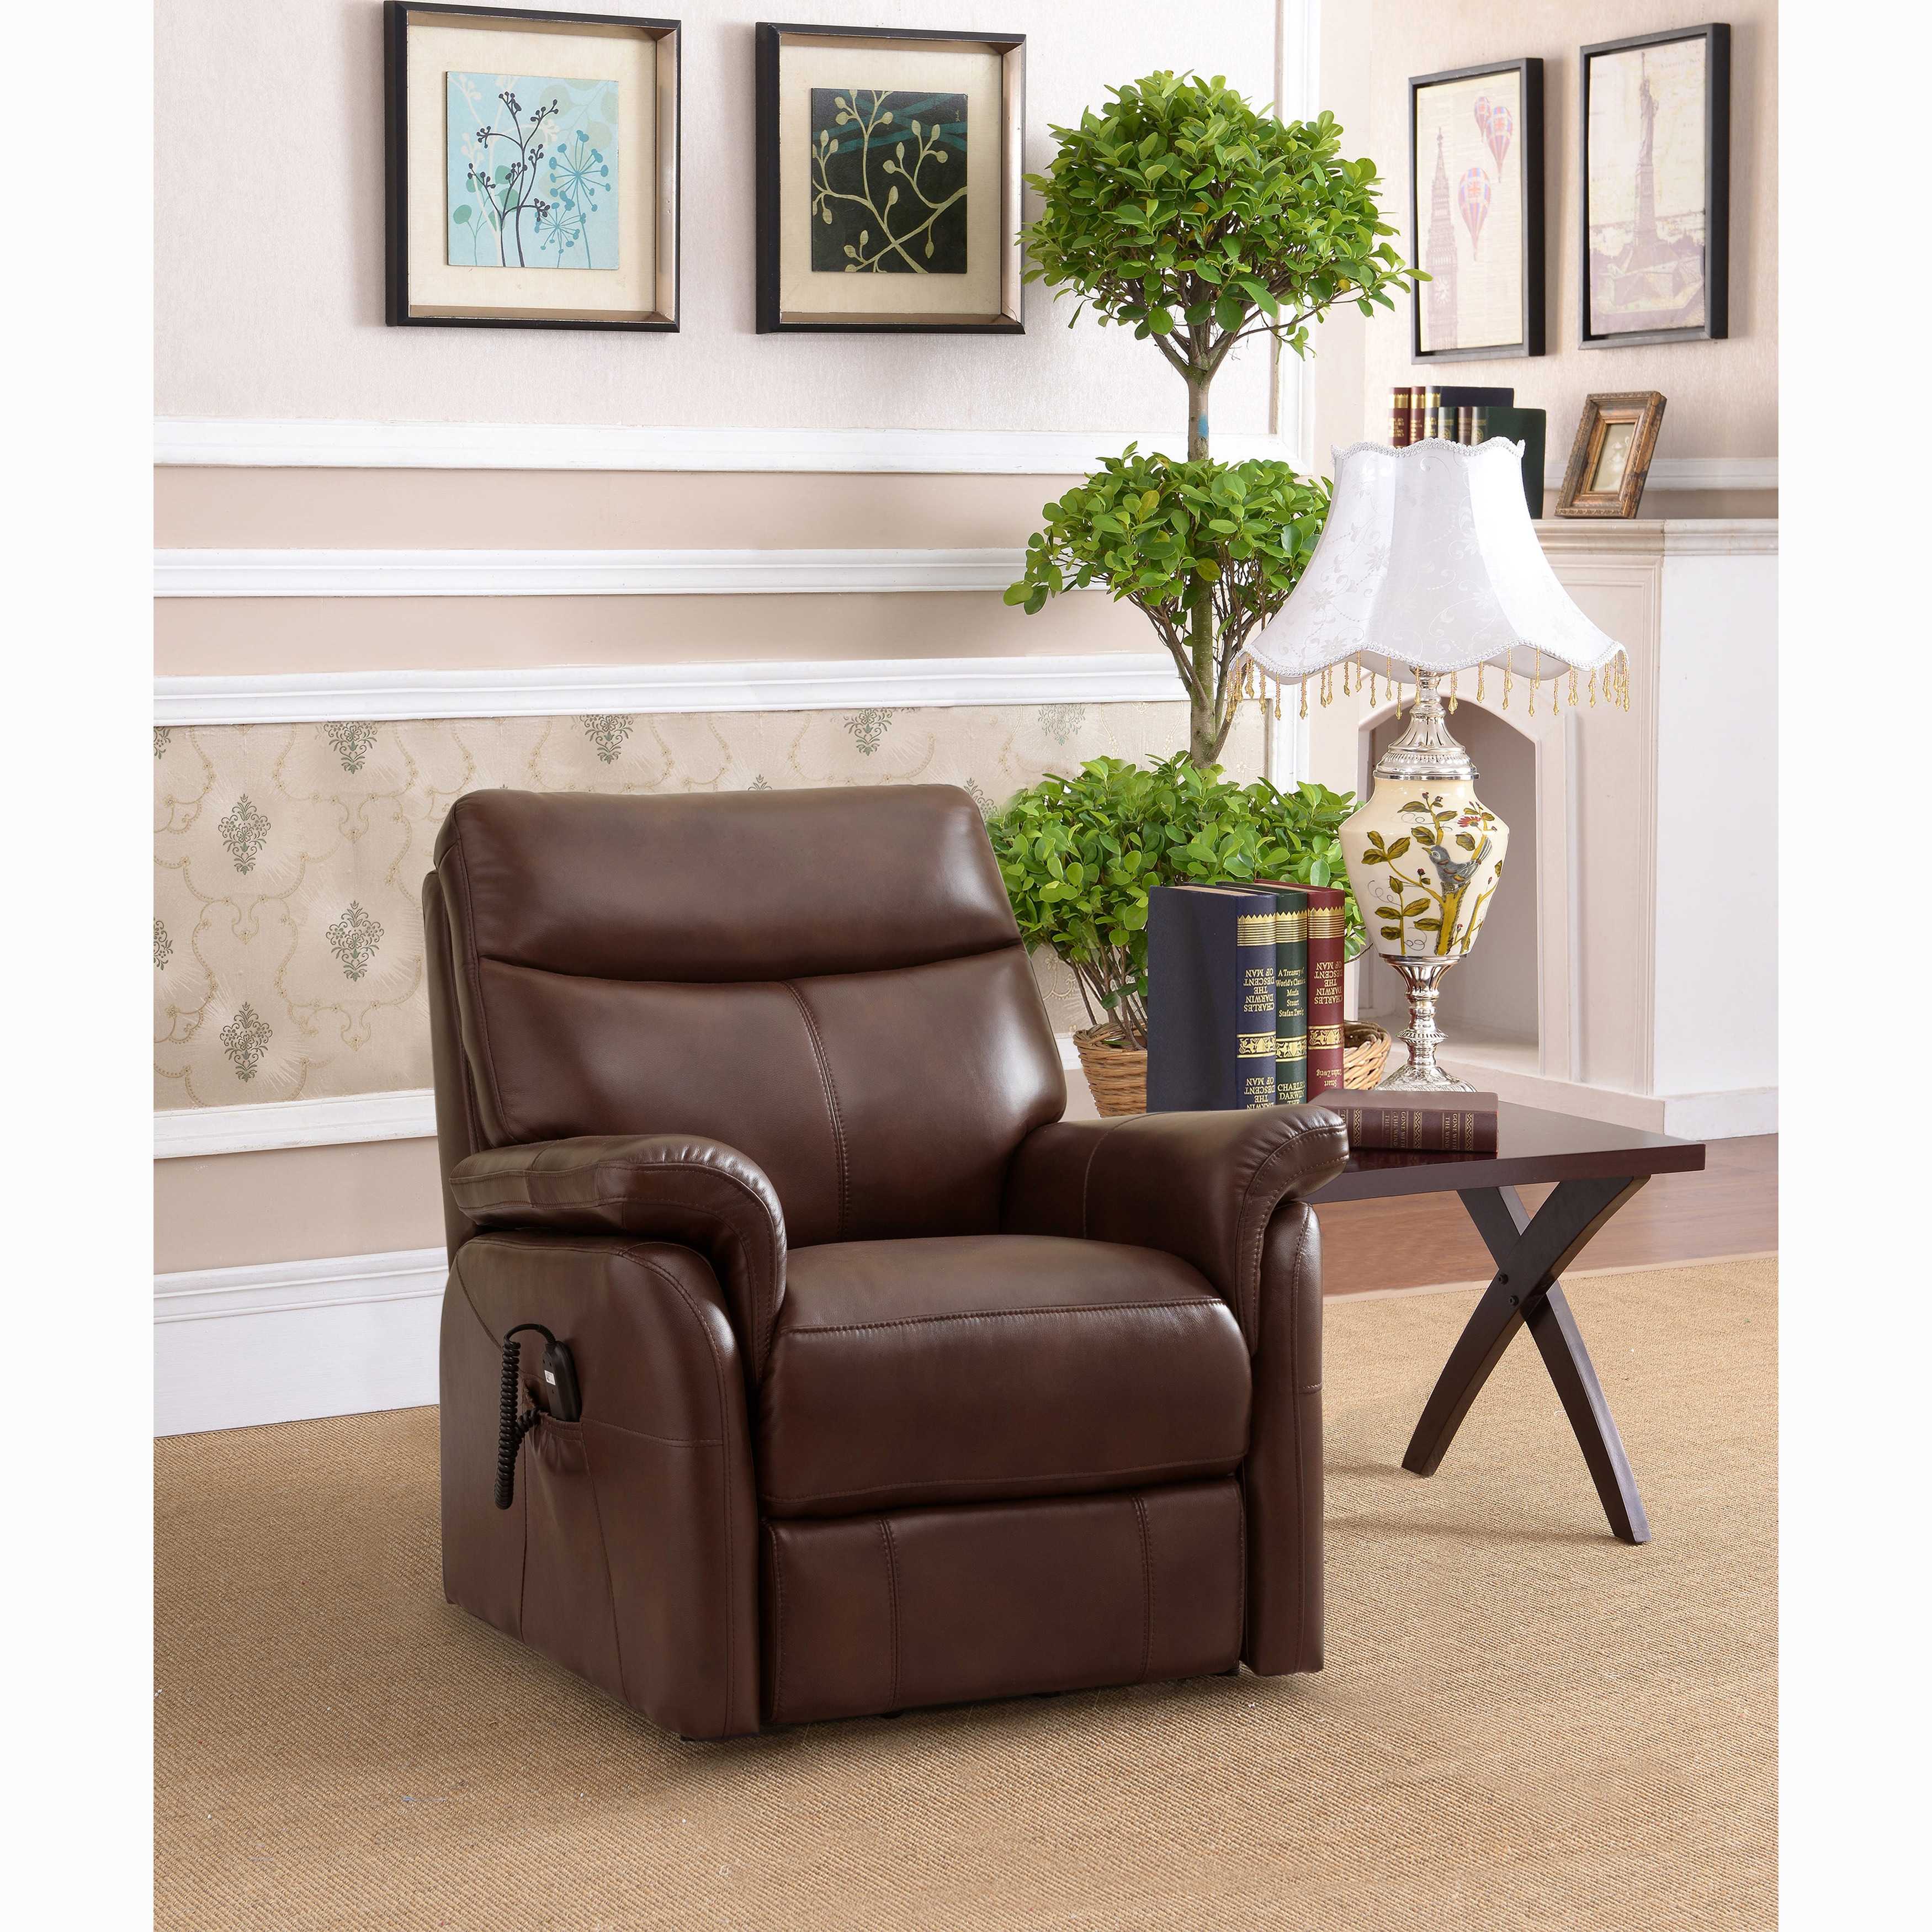 lay flat recliner chairs academy zero gravity shop ivy brown top grain leather power lift and chair